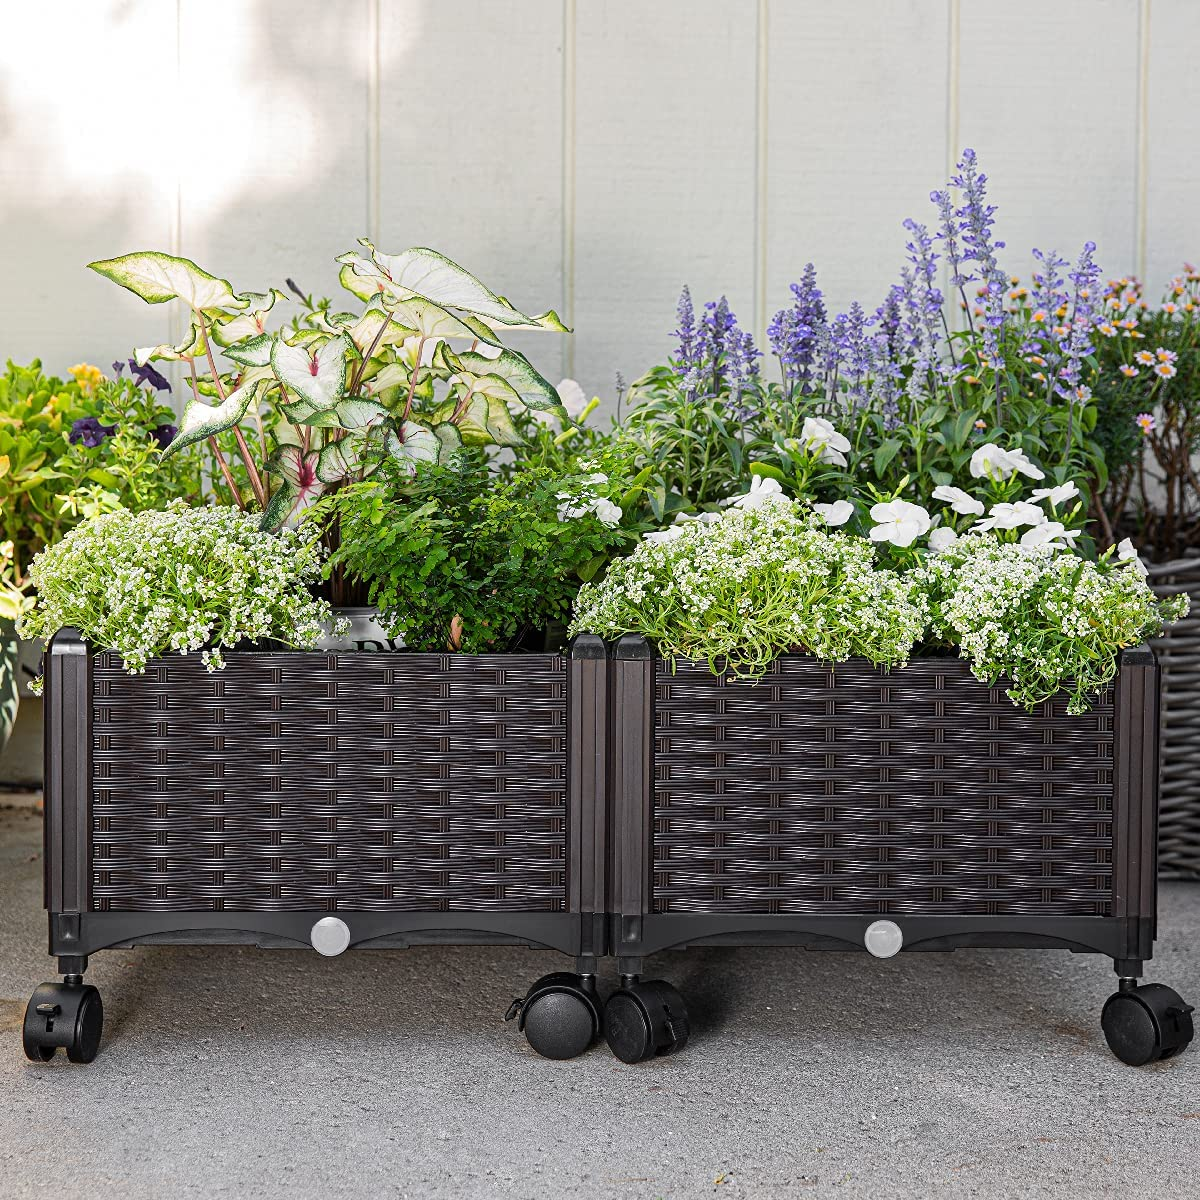 Barton 2-Pieces Plastic Raised Garden Bed Planter Box with Self-Watering Design & Drainage Holes Mobile Wheels, Brown